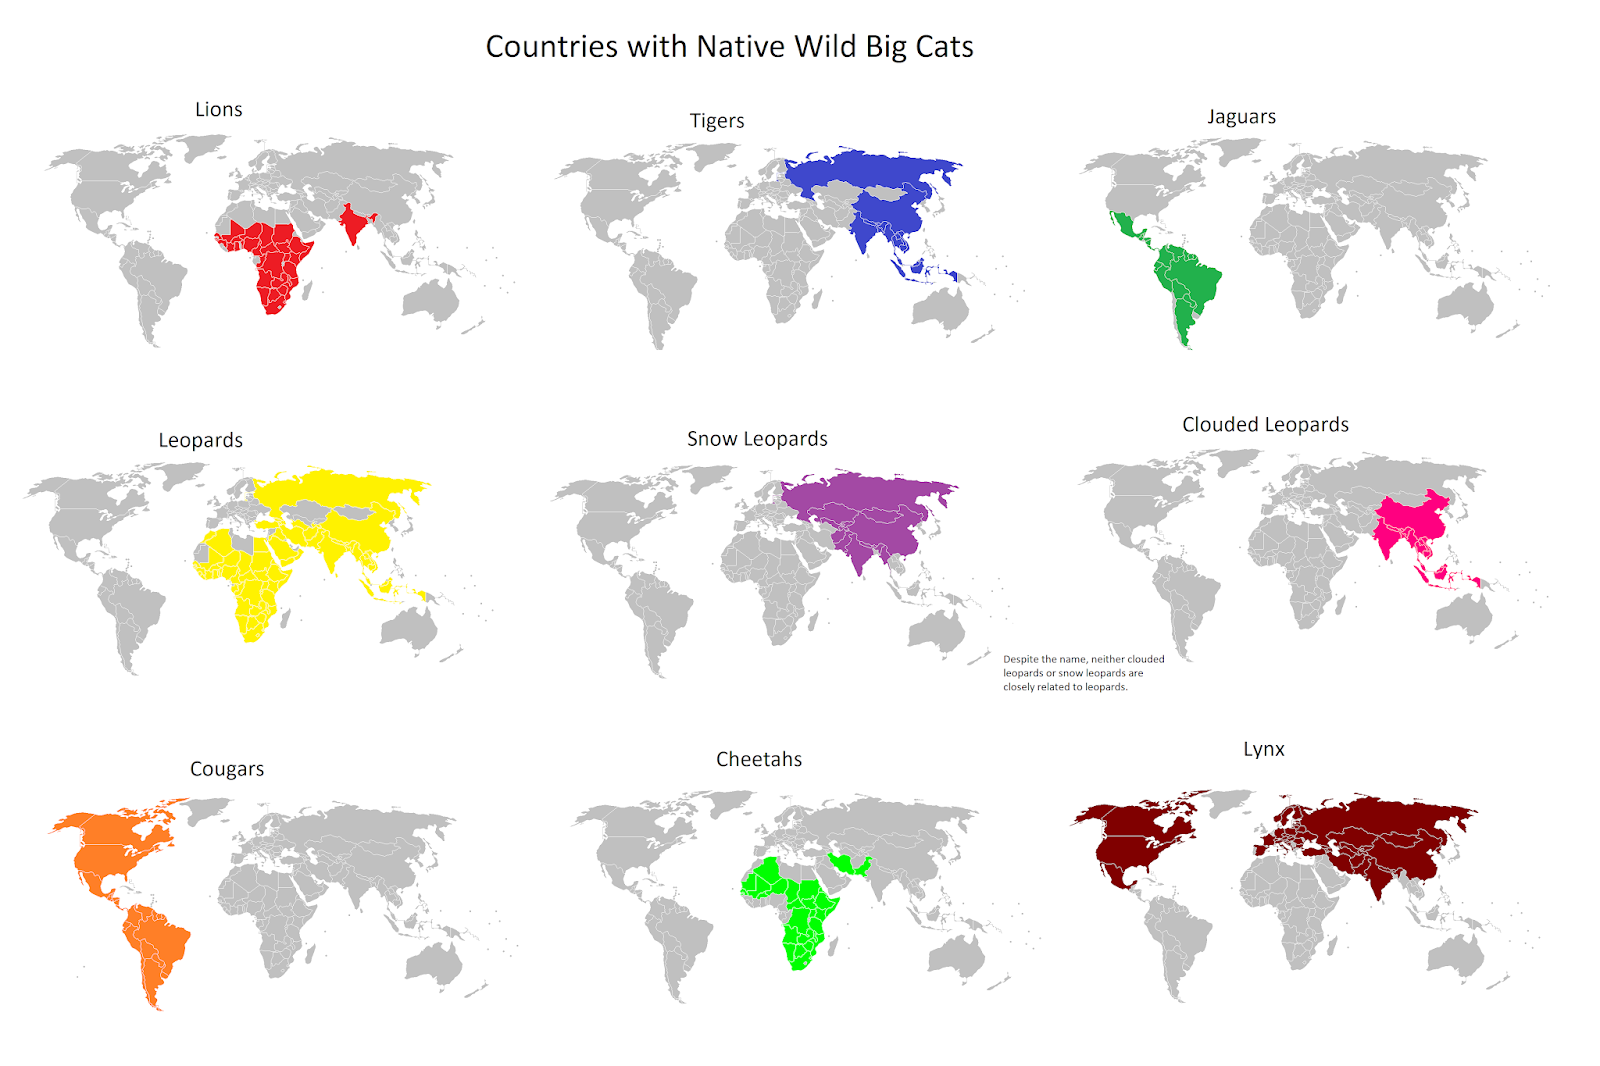 Nations with native wild big cats